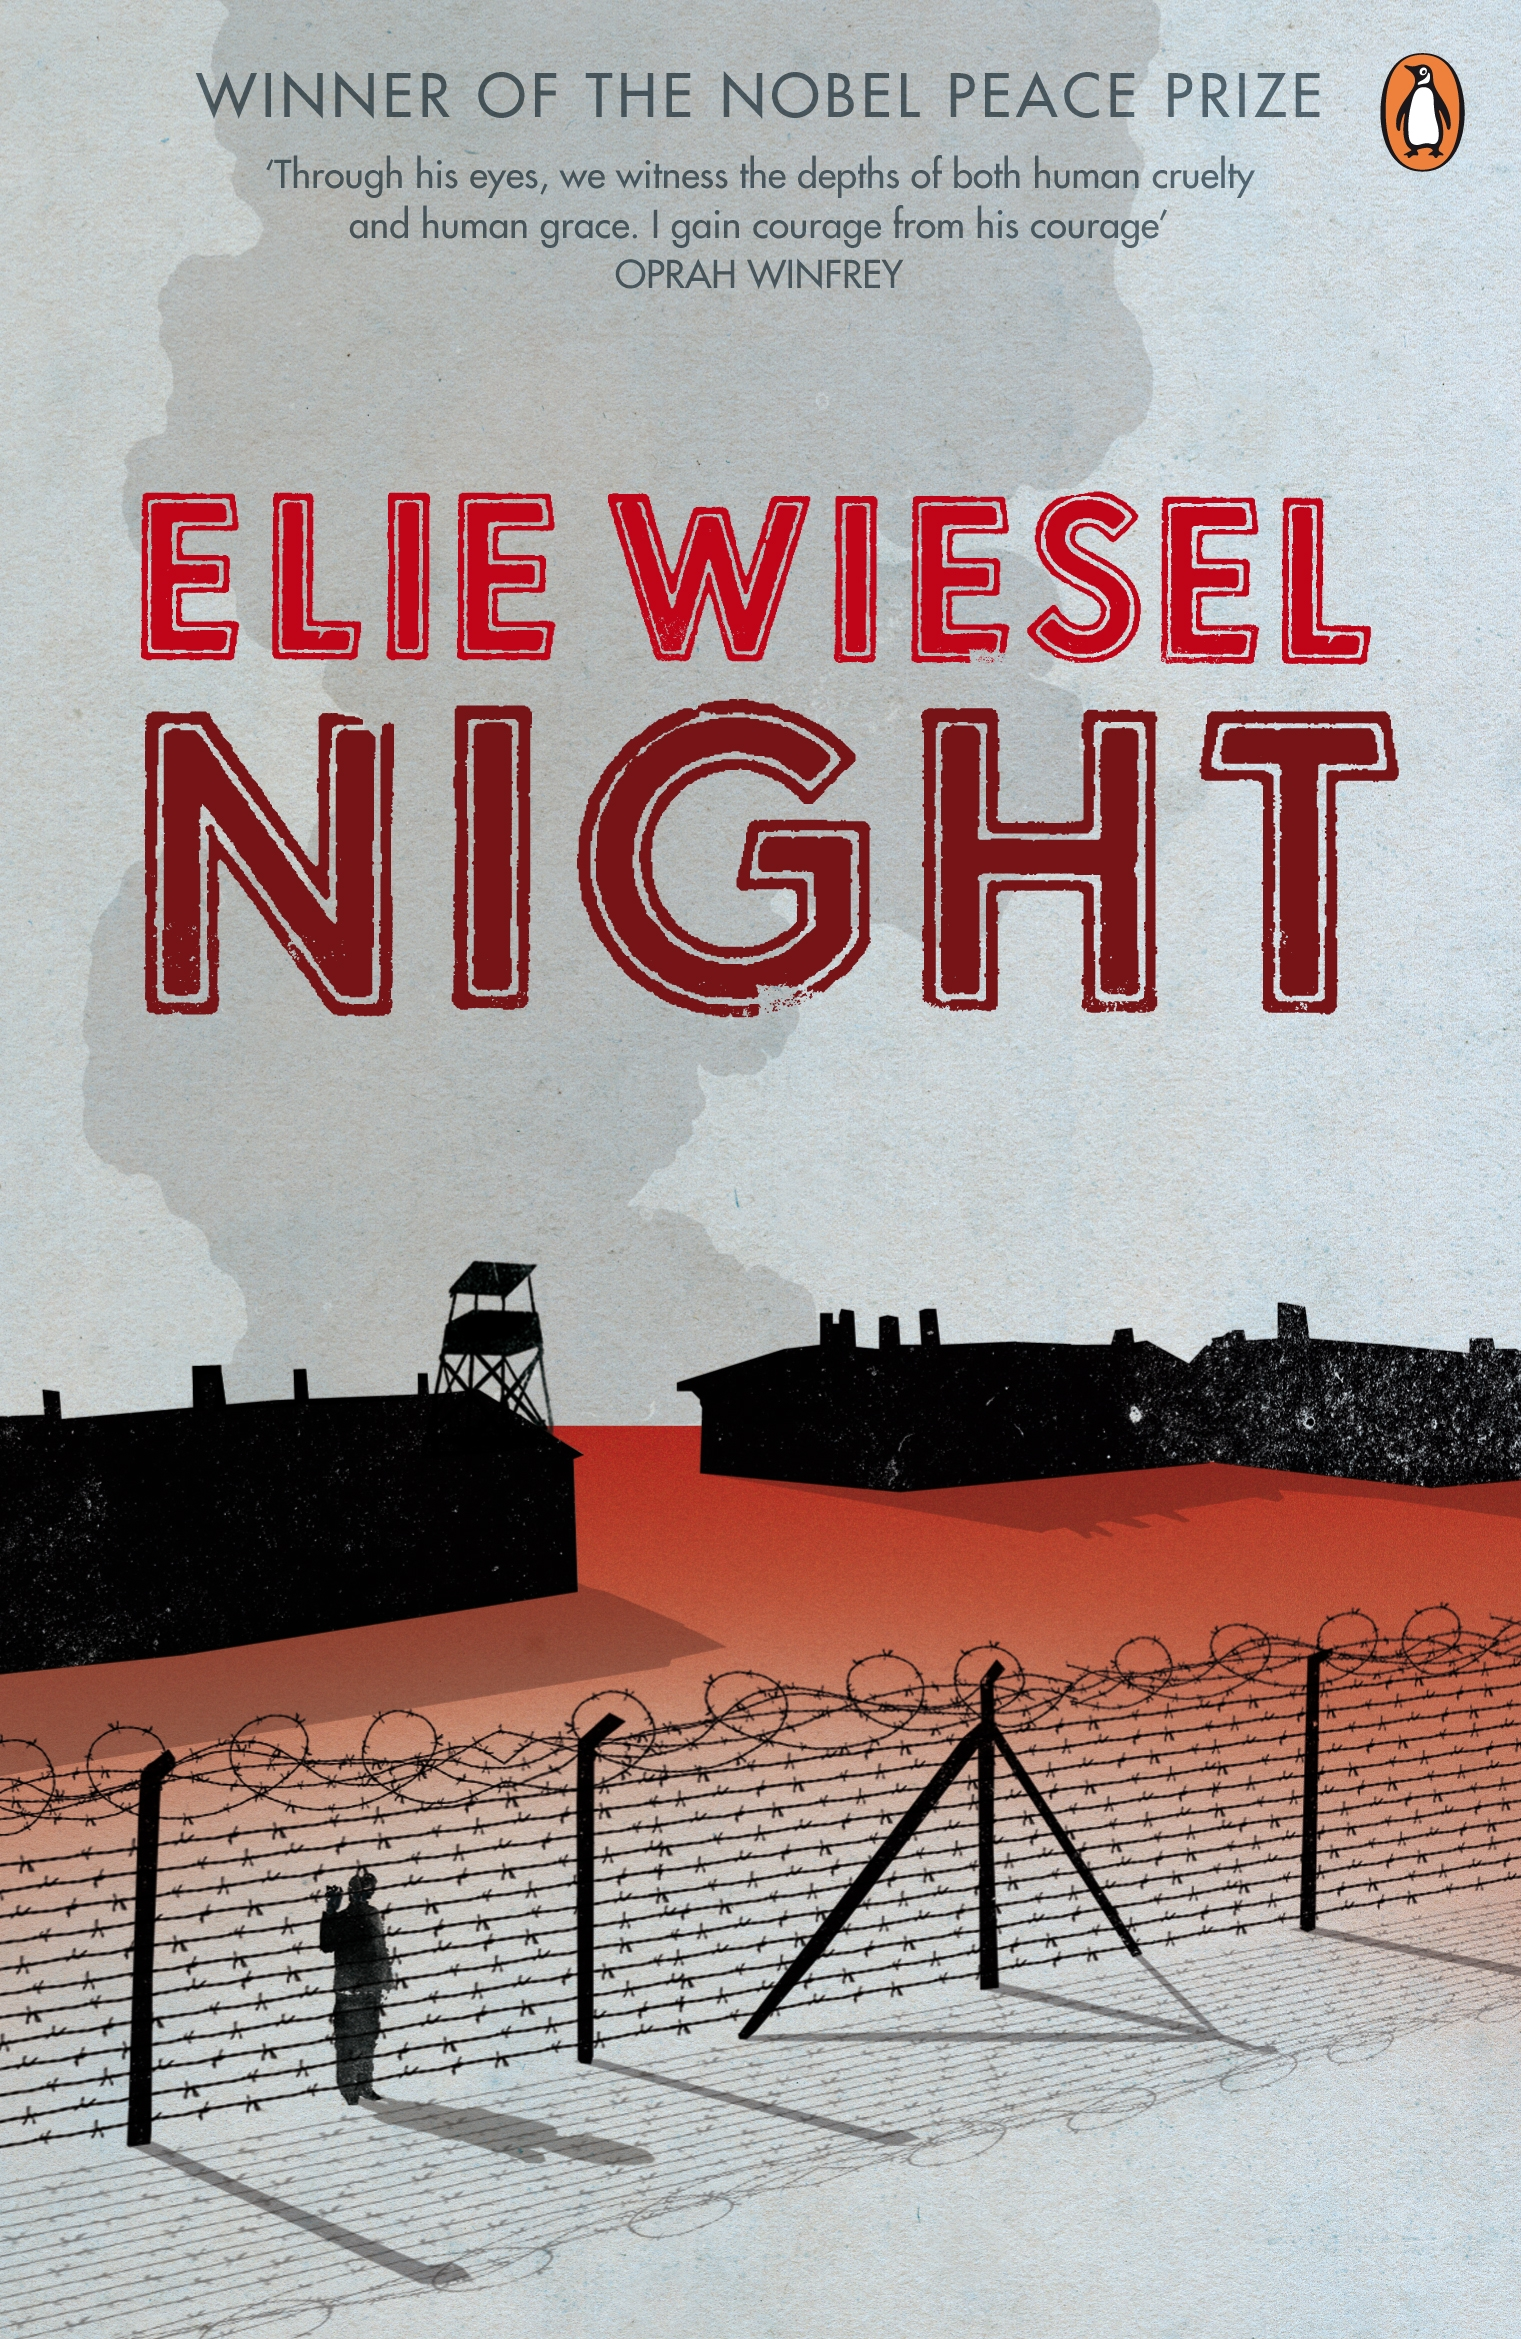 night by elie wiesel theme essay  night by elie wiesel theme essay